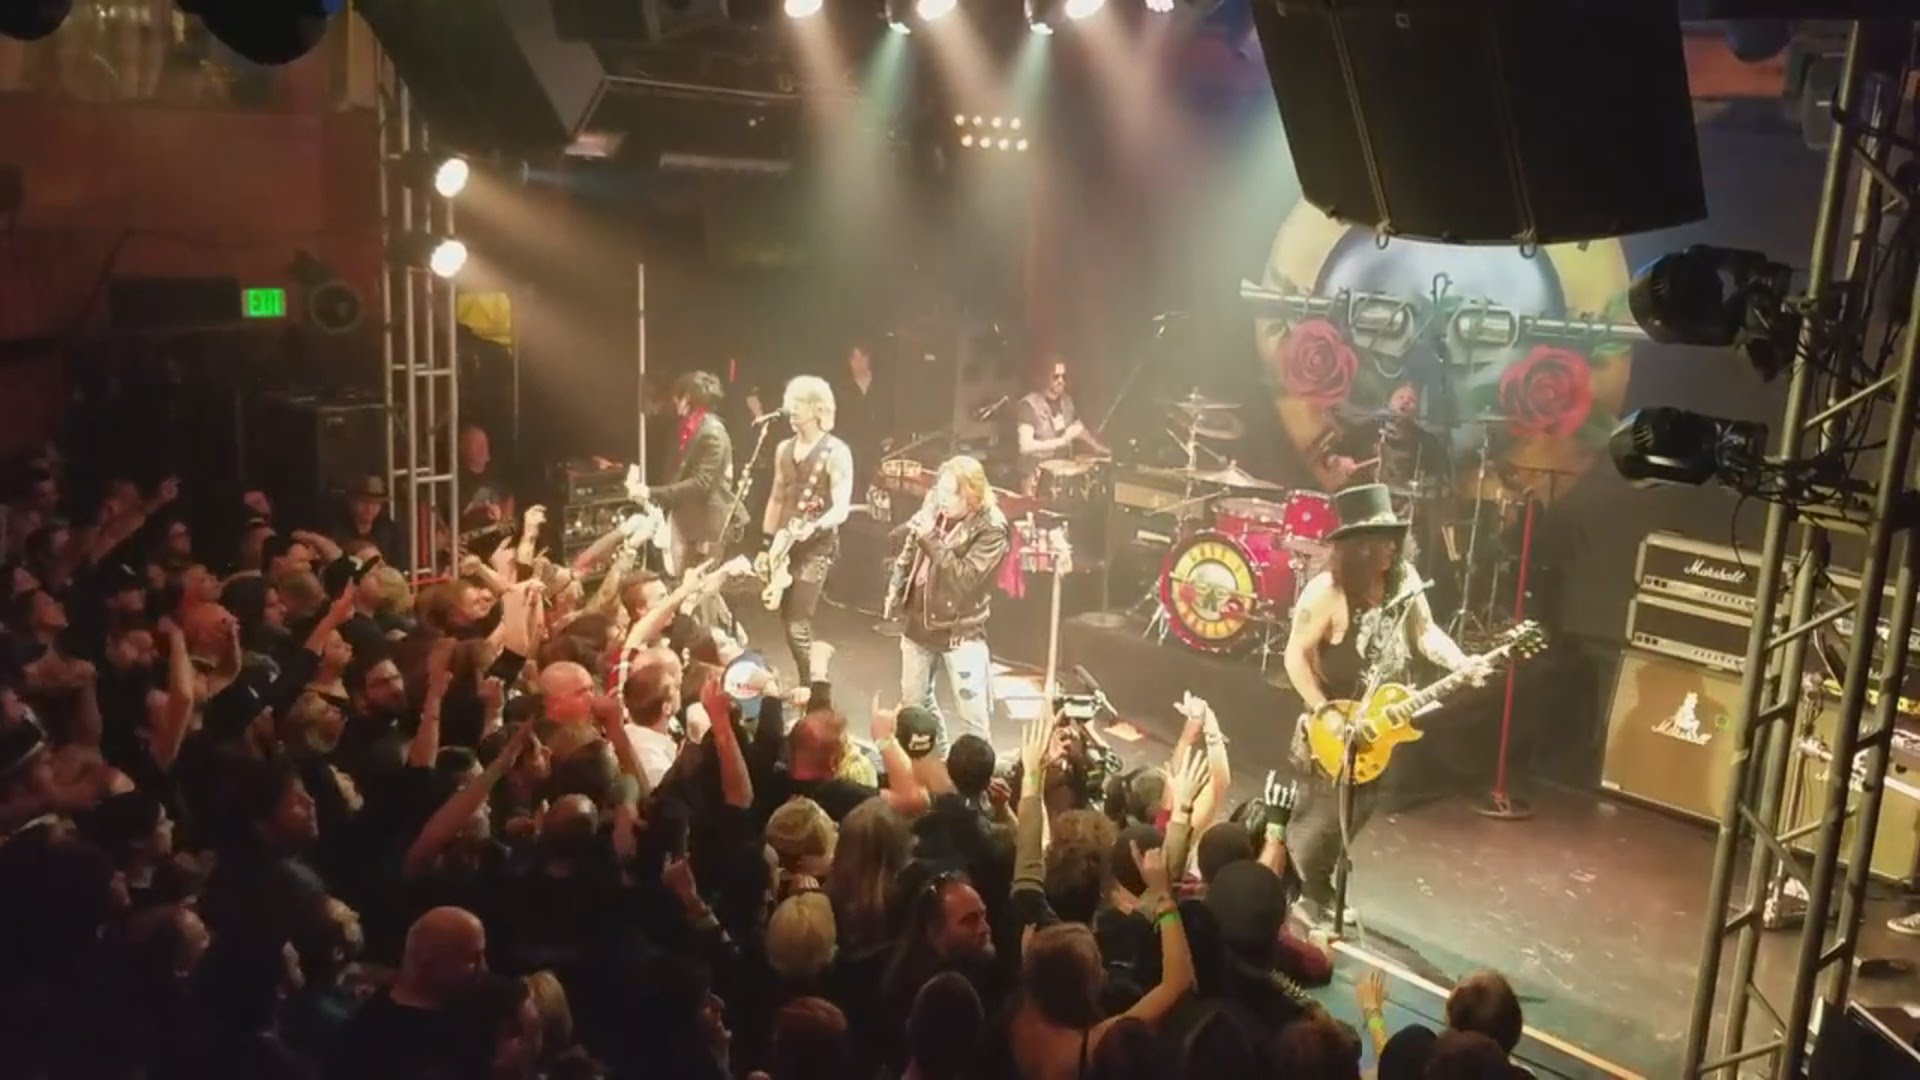 Guns-n-roses-Troubadour show-2016-Ph courtesy Youtube